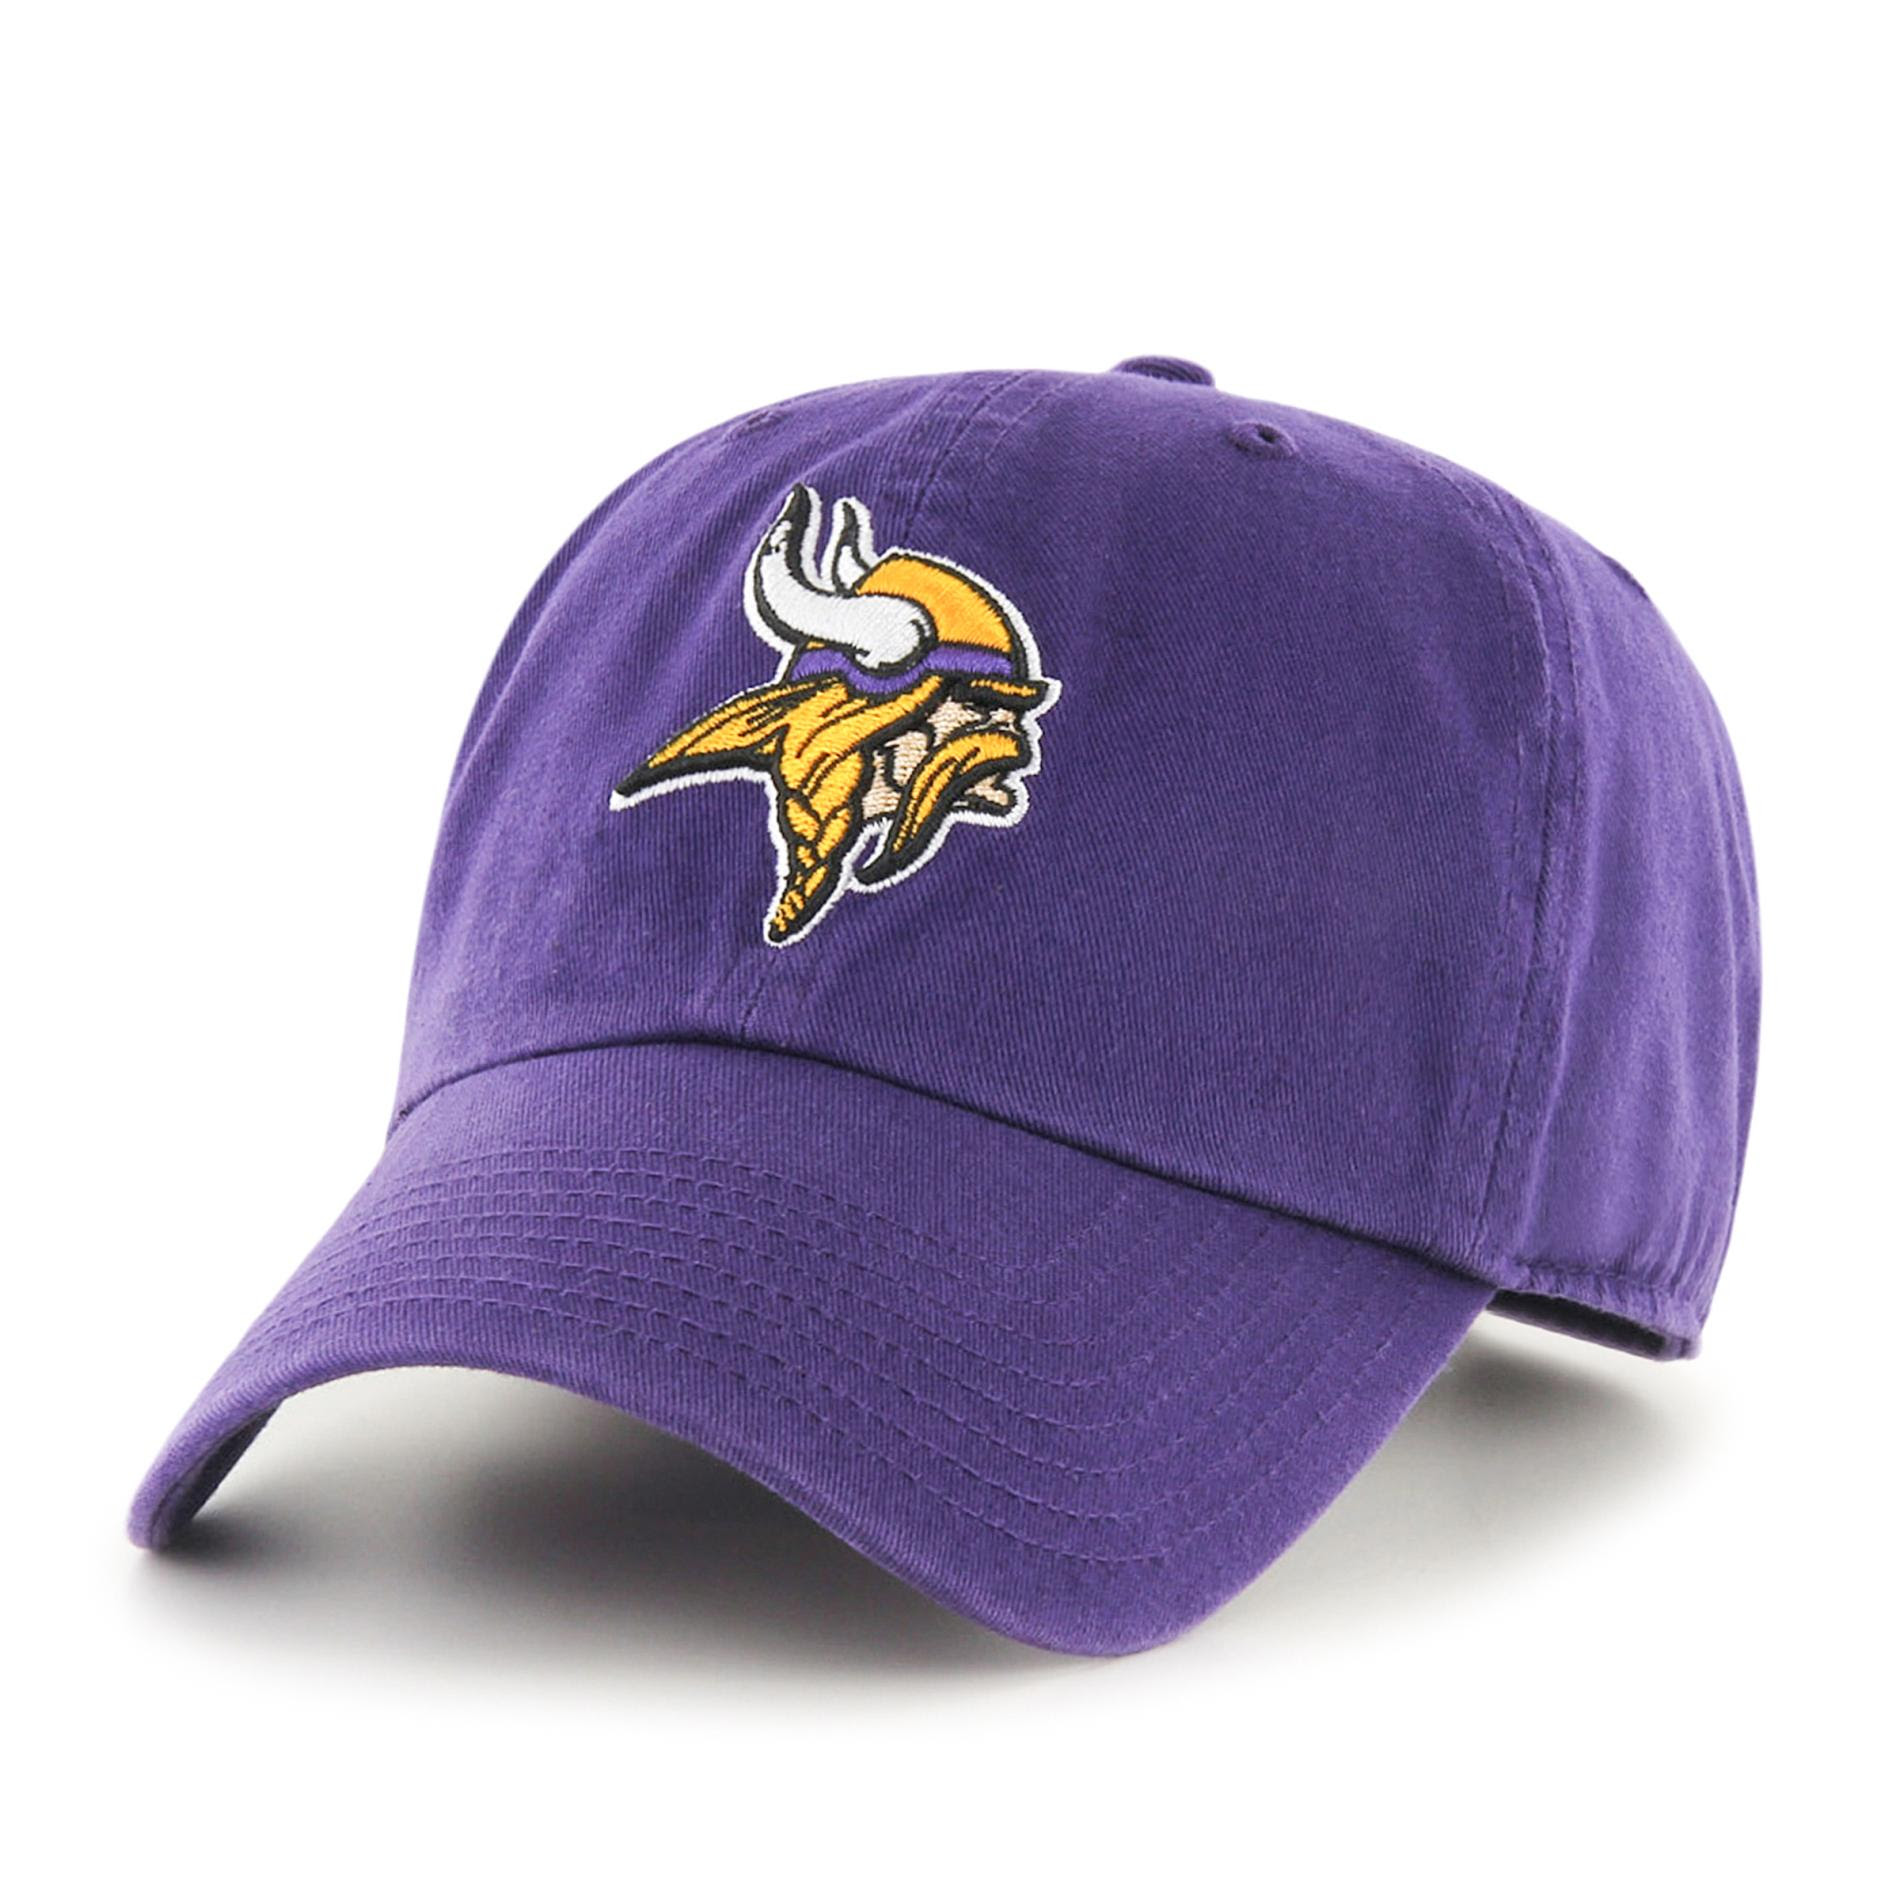 NFL Mens Baseball Hat  Minnesota Vikings